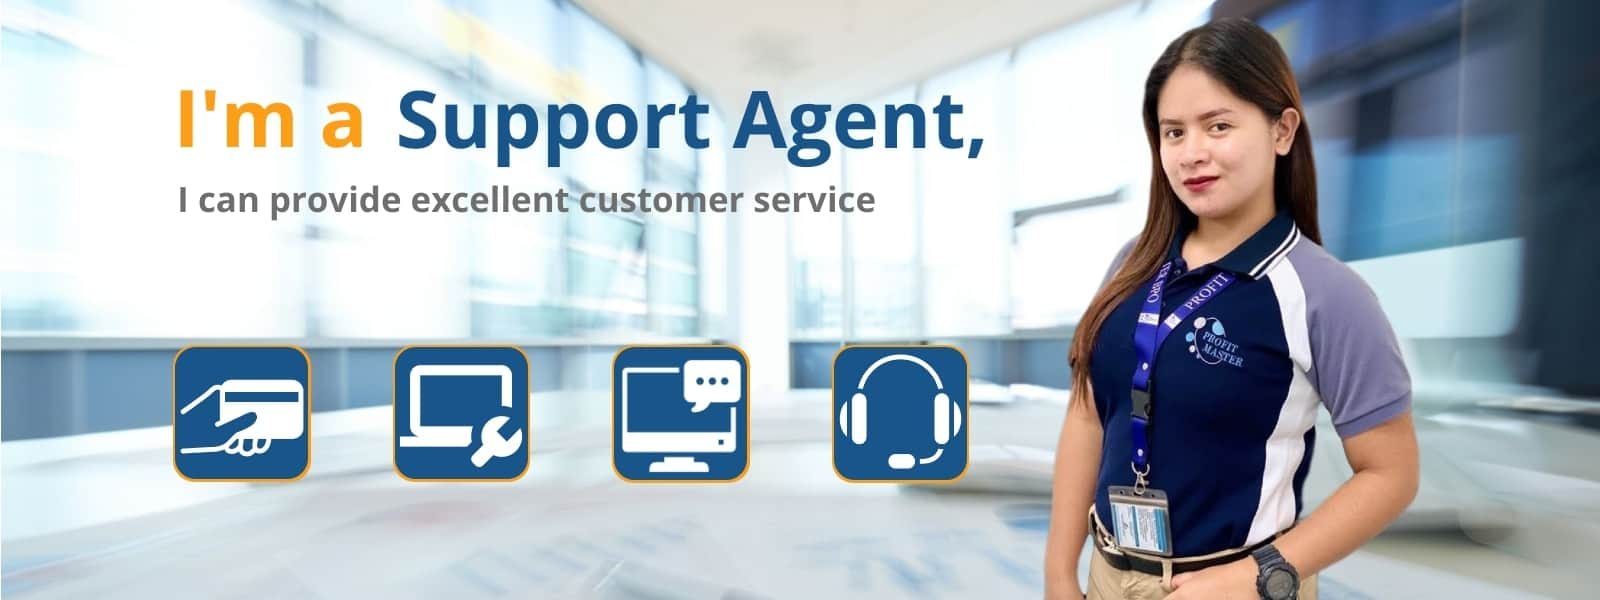 support_agent